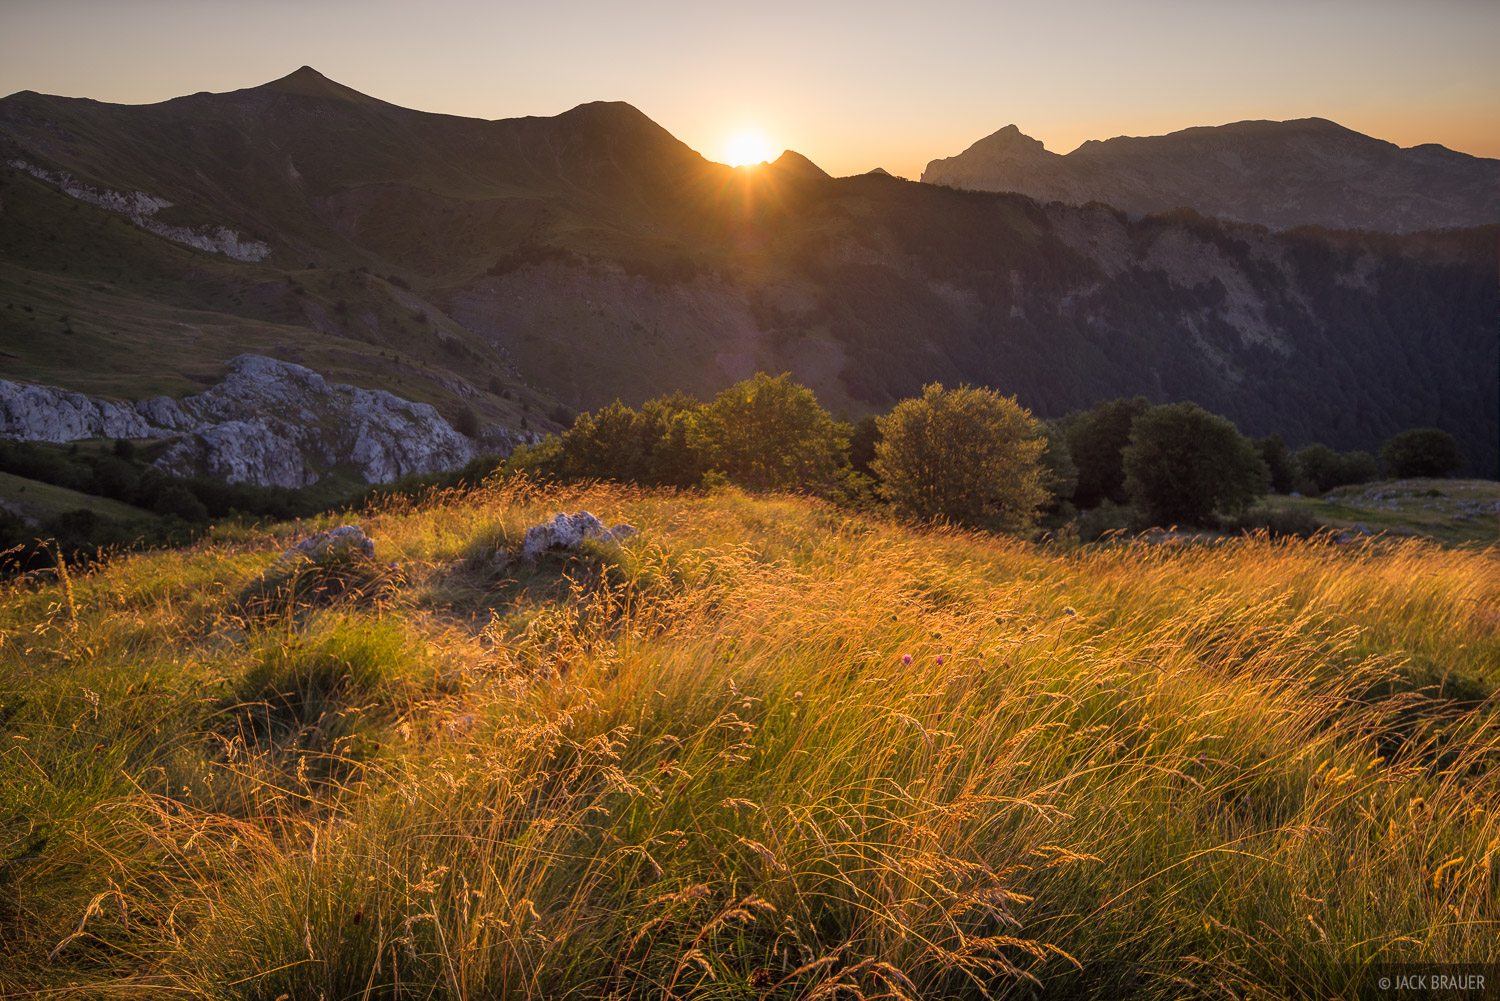 Meadow Sunset : Prokletije, Montenegro : Mountain Photography by Jack ...: www.mountainphotography.com/photo/meadow-sunset